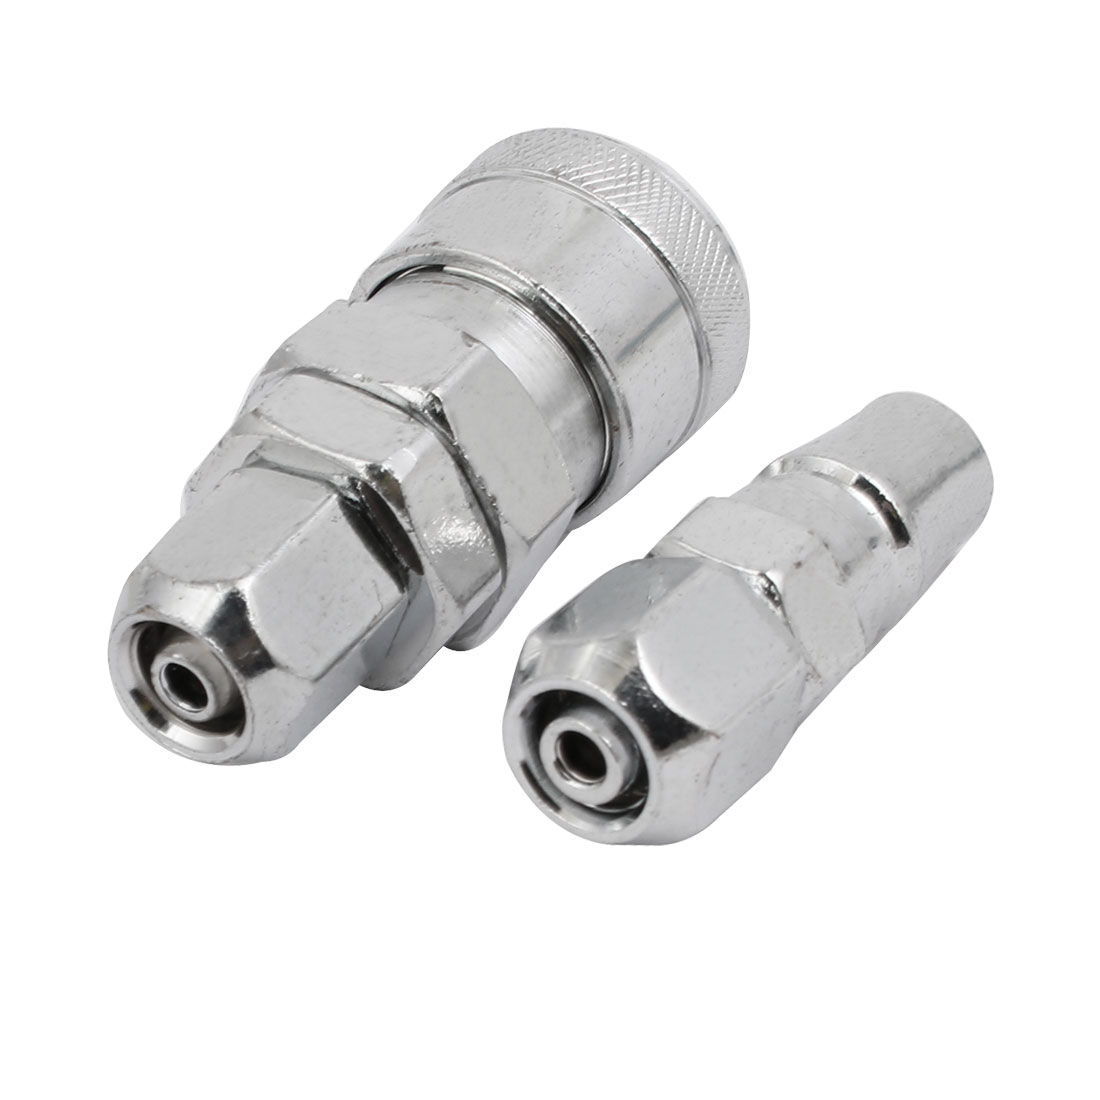 20SP+PP Air Compressor Quick Coupler Set for 8mm OD 5mm Inner Dia Pipe